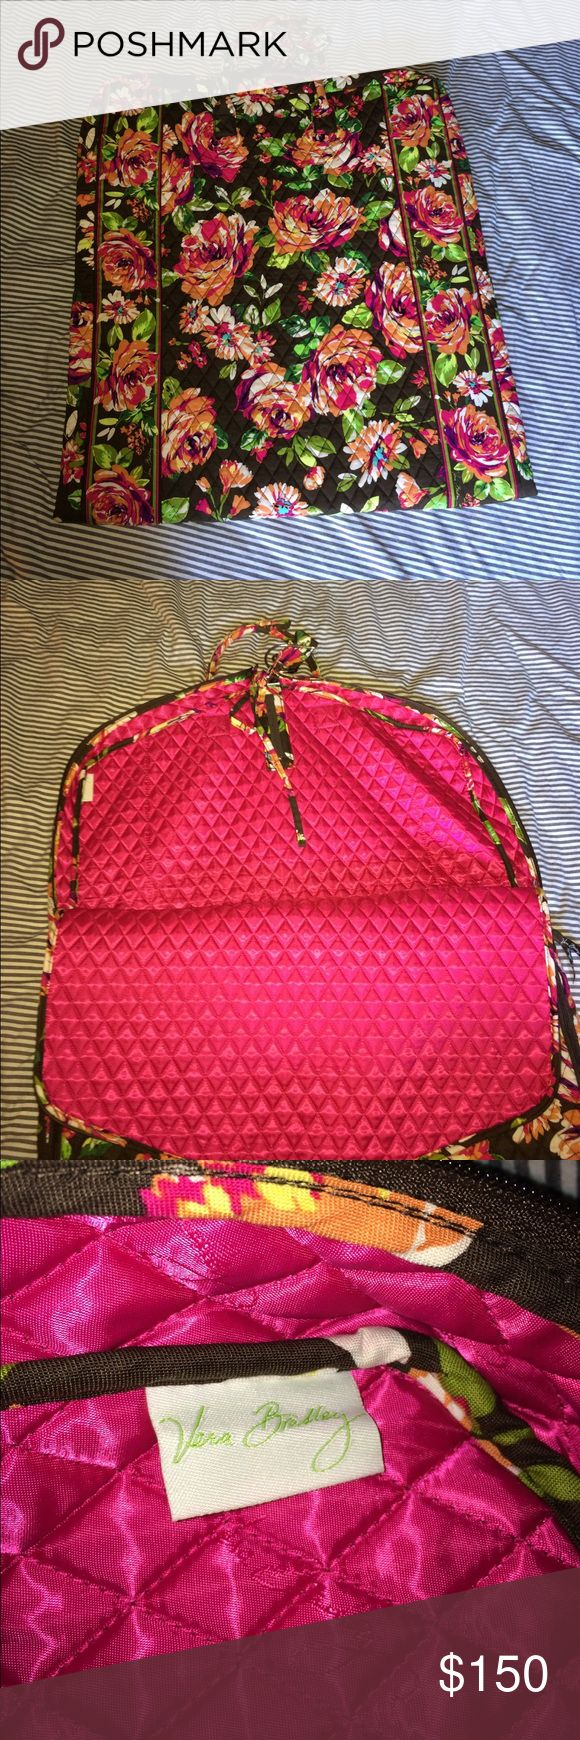 "Vera Bradley Garment Bag Retired English Rose pattern. Purchased new several years ago because I always wanted a garment bag. Never used it, so I'm getting rid of it. 54"" long x 22.5"" wide. Two handles (no shoulder strap). Perfect condition! Open to reasonable offers. Thanks for looking! Vera Bradley Bags Travel Bags"